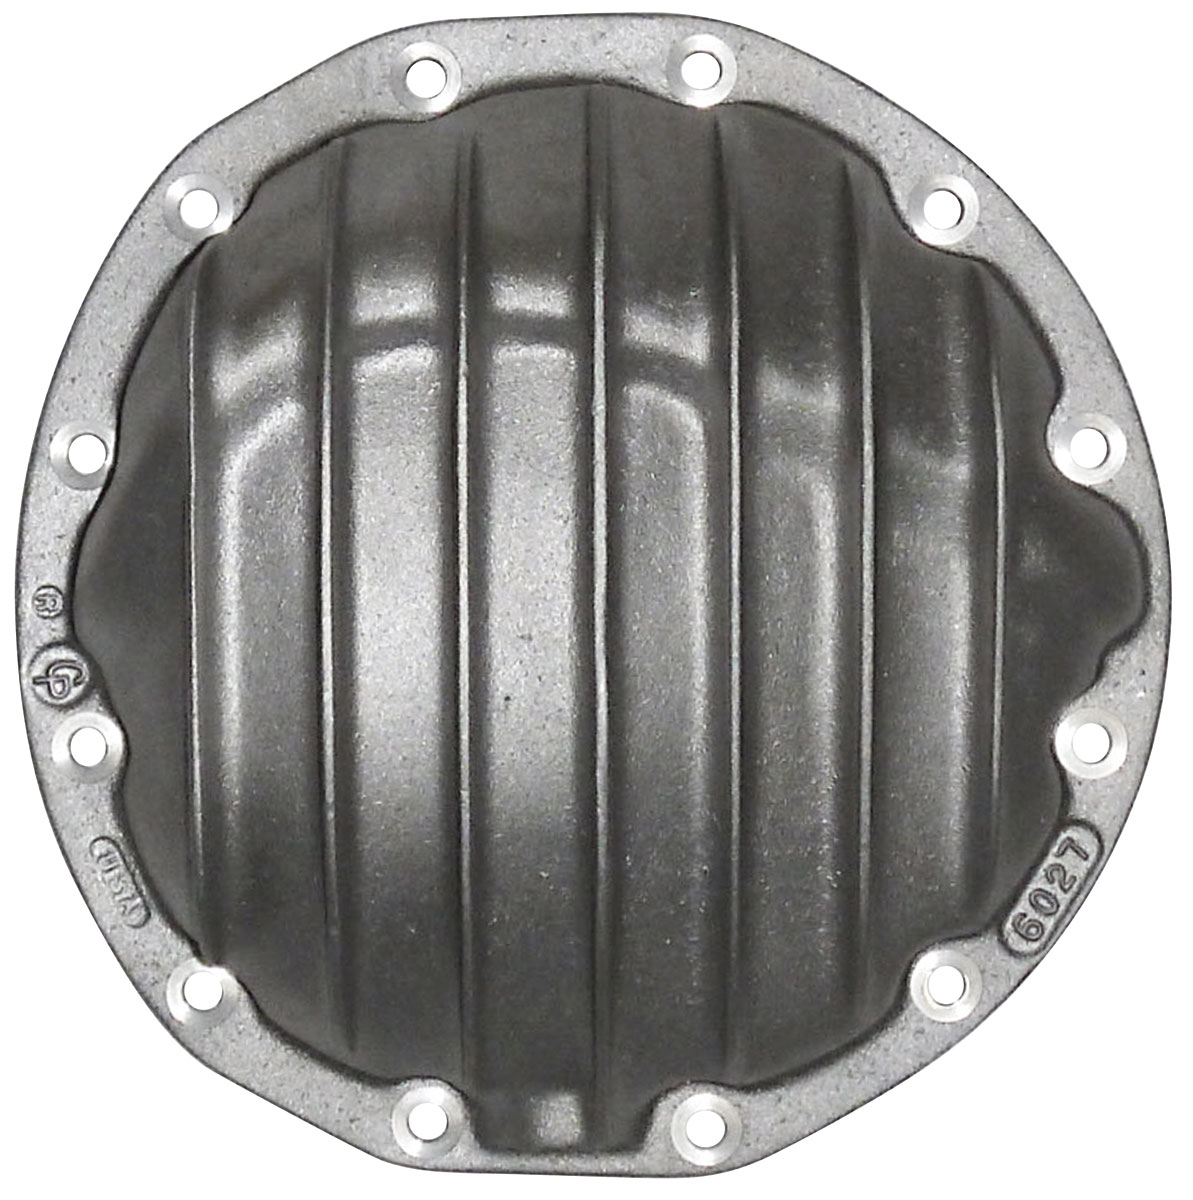 Photo of Differential Cover, Cast Aluminum 12-bolt w/fins